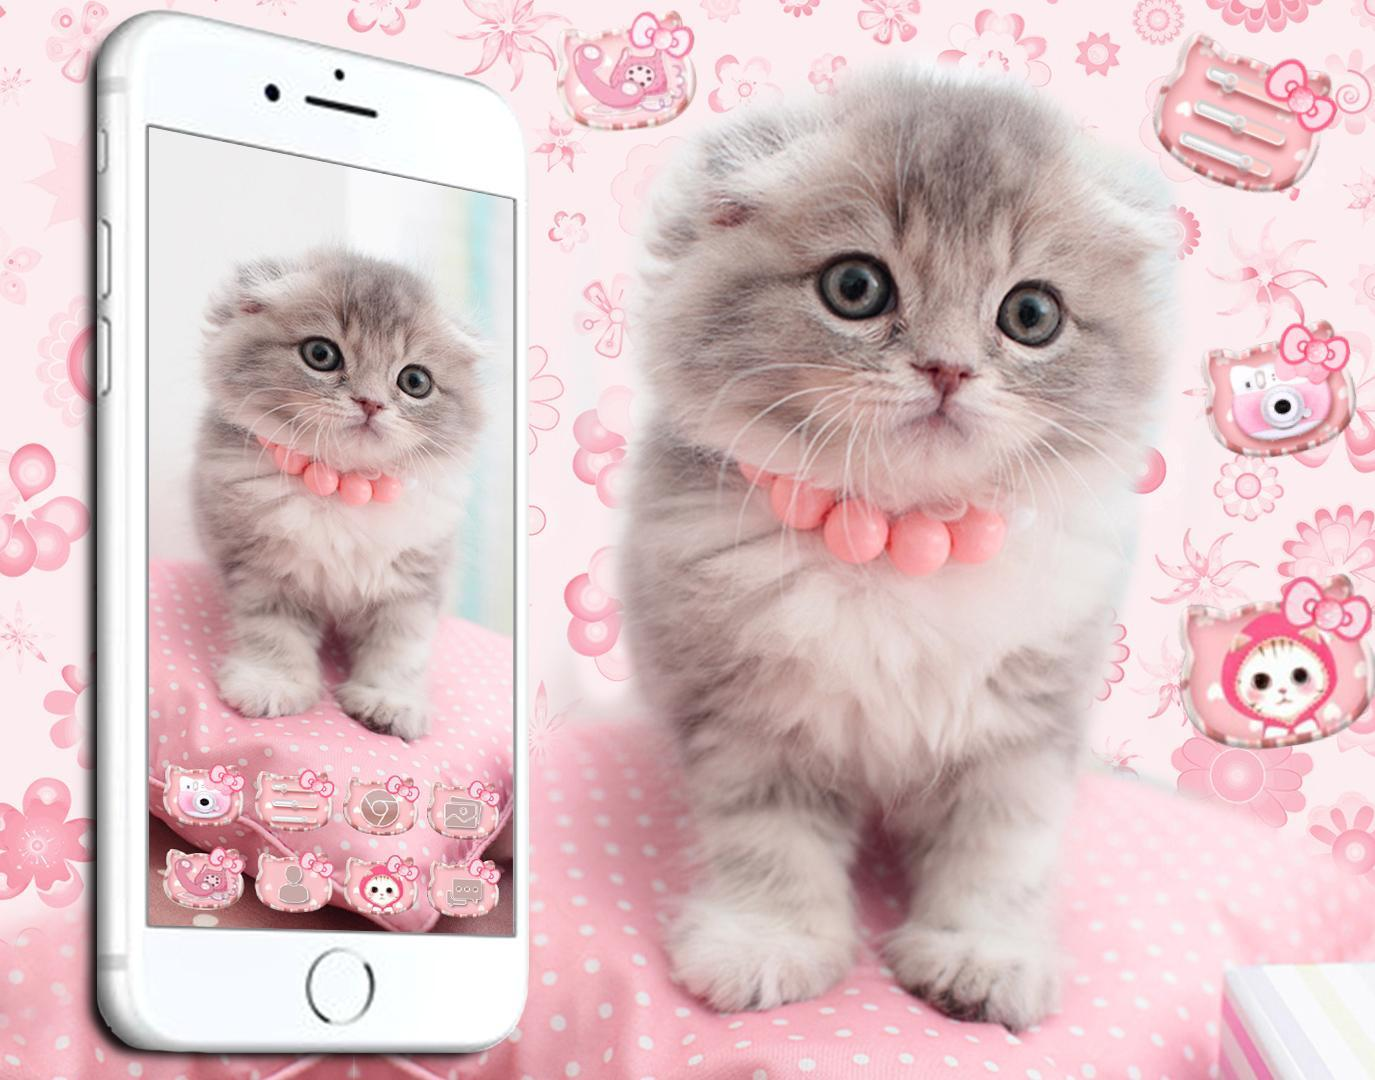 Cute Cat Live Launcher Theme 3d Wallpapers For Android Apk